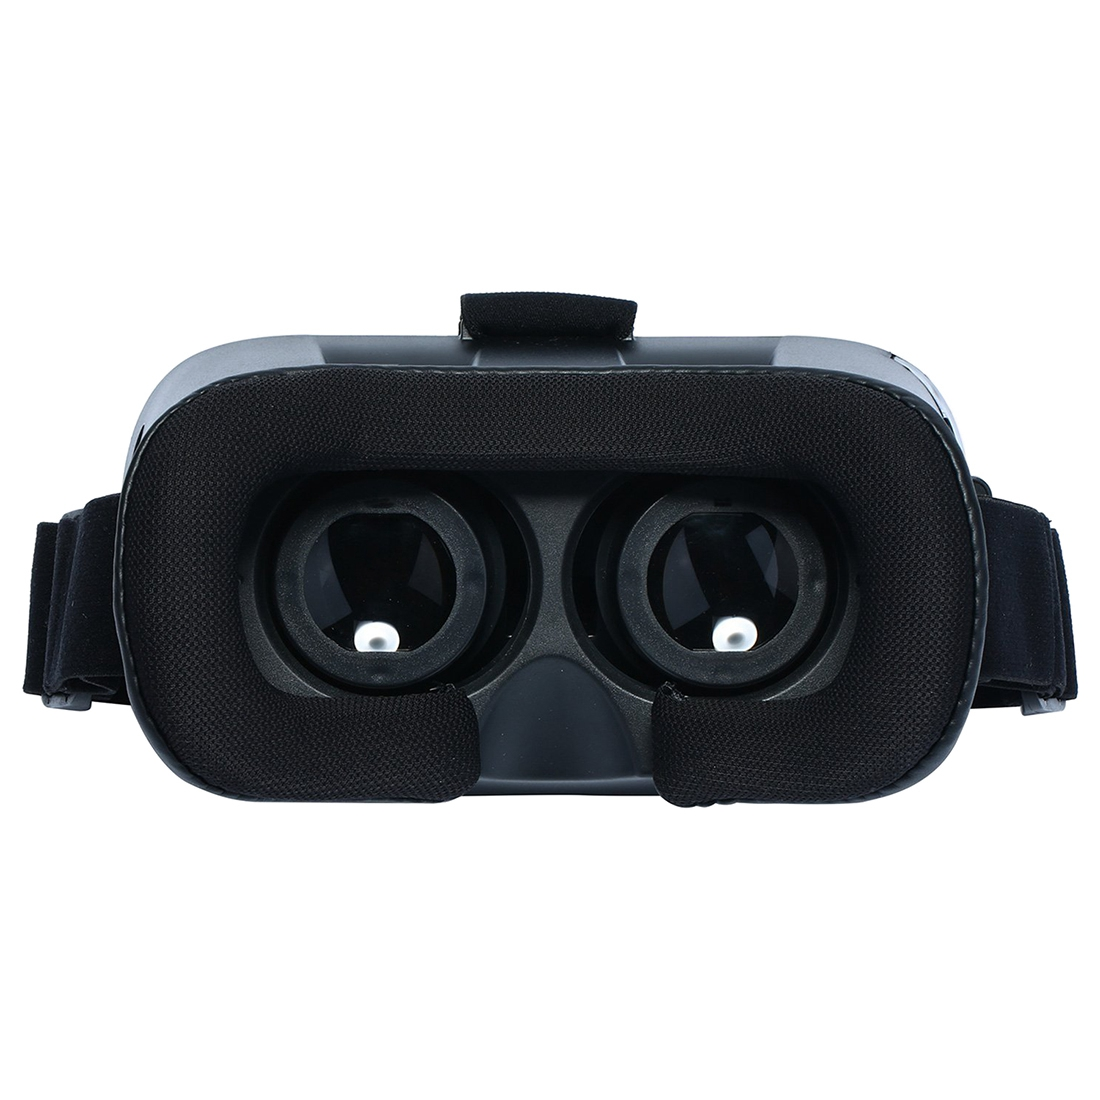 HFES Universal ABS VR01 3D VR Virtual Reality Headset 3D Glasses for 4.7″-6.0″ Smart Phone black